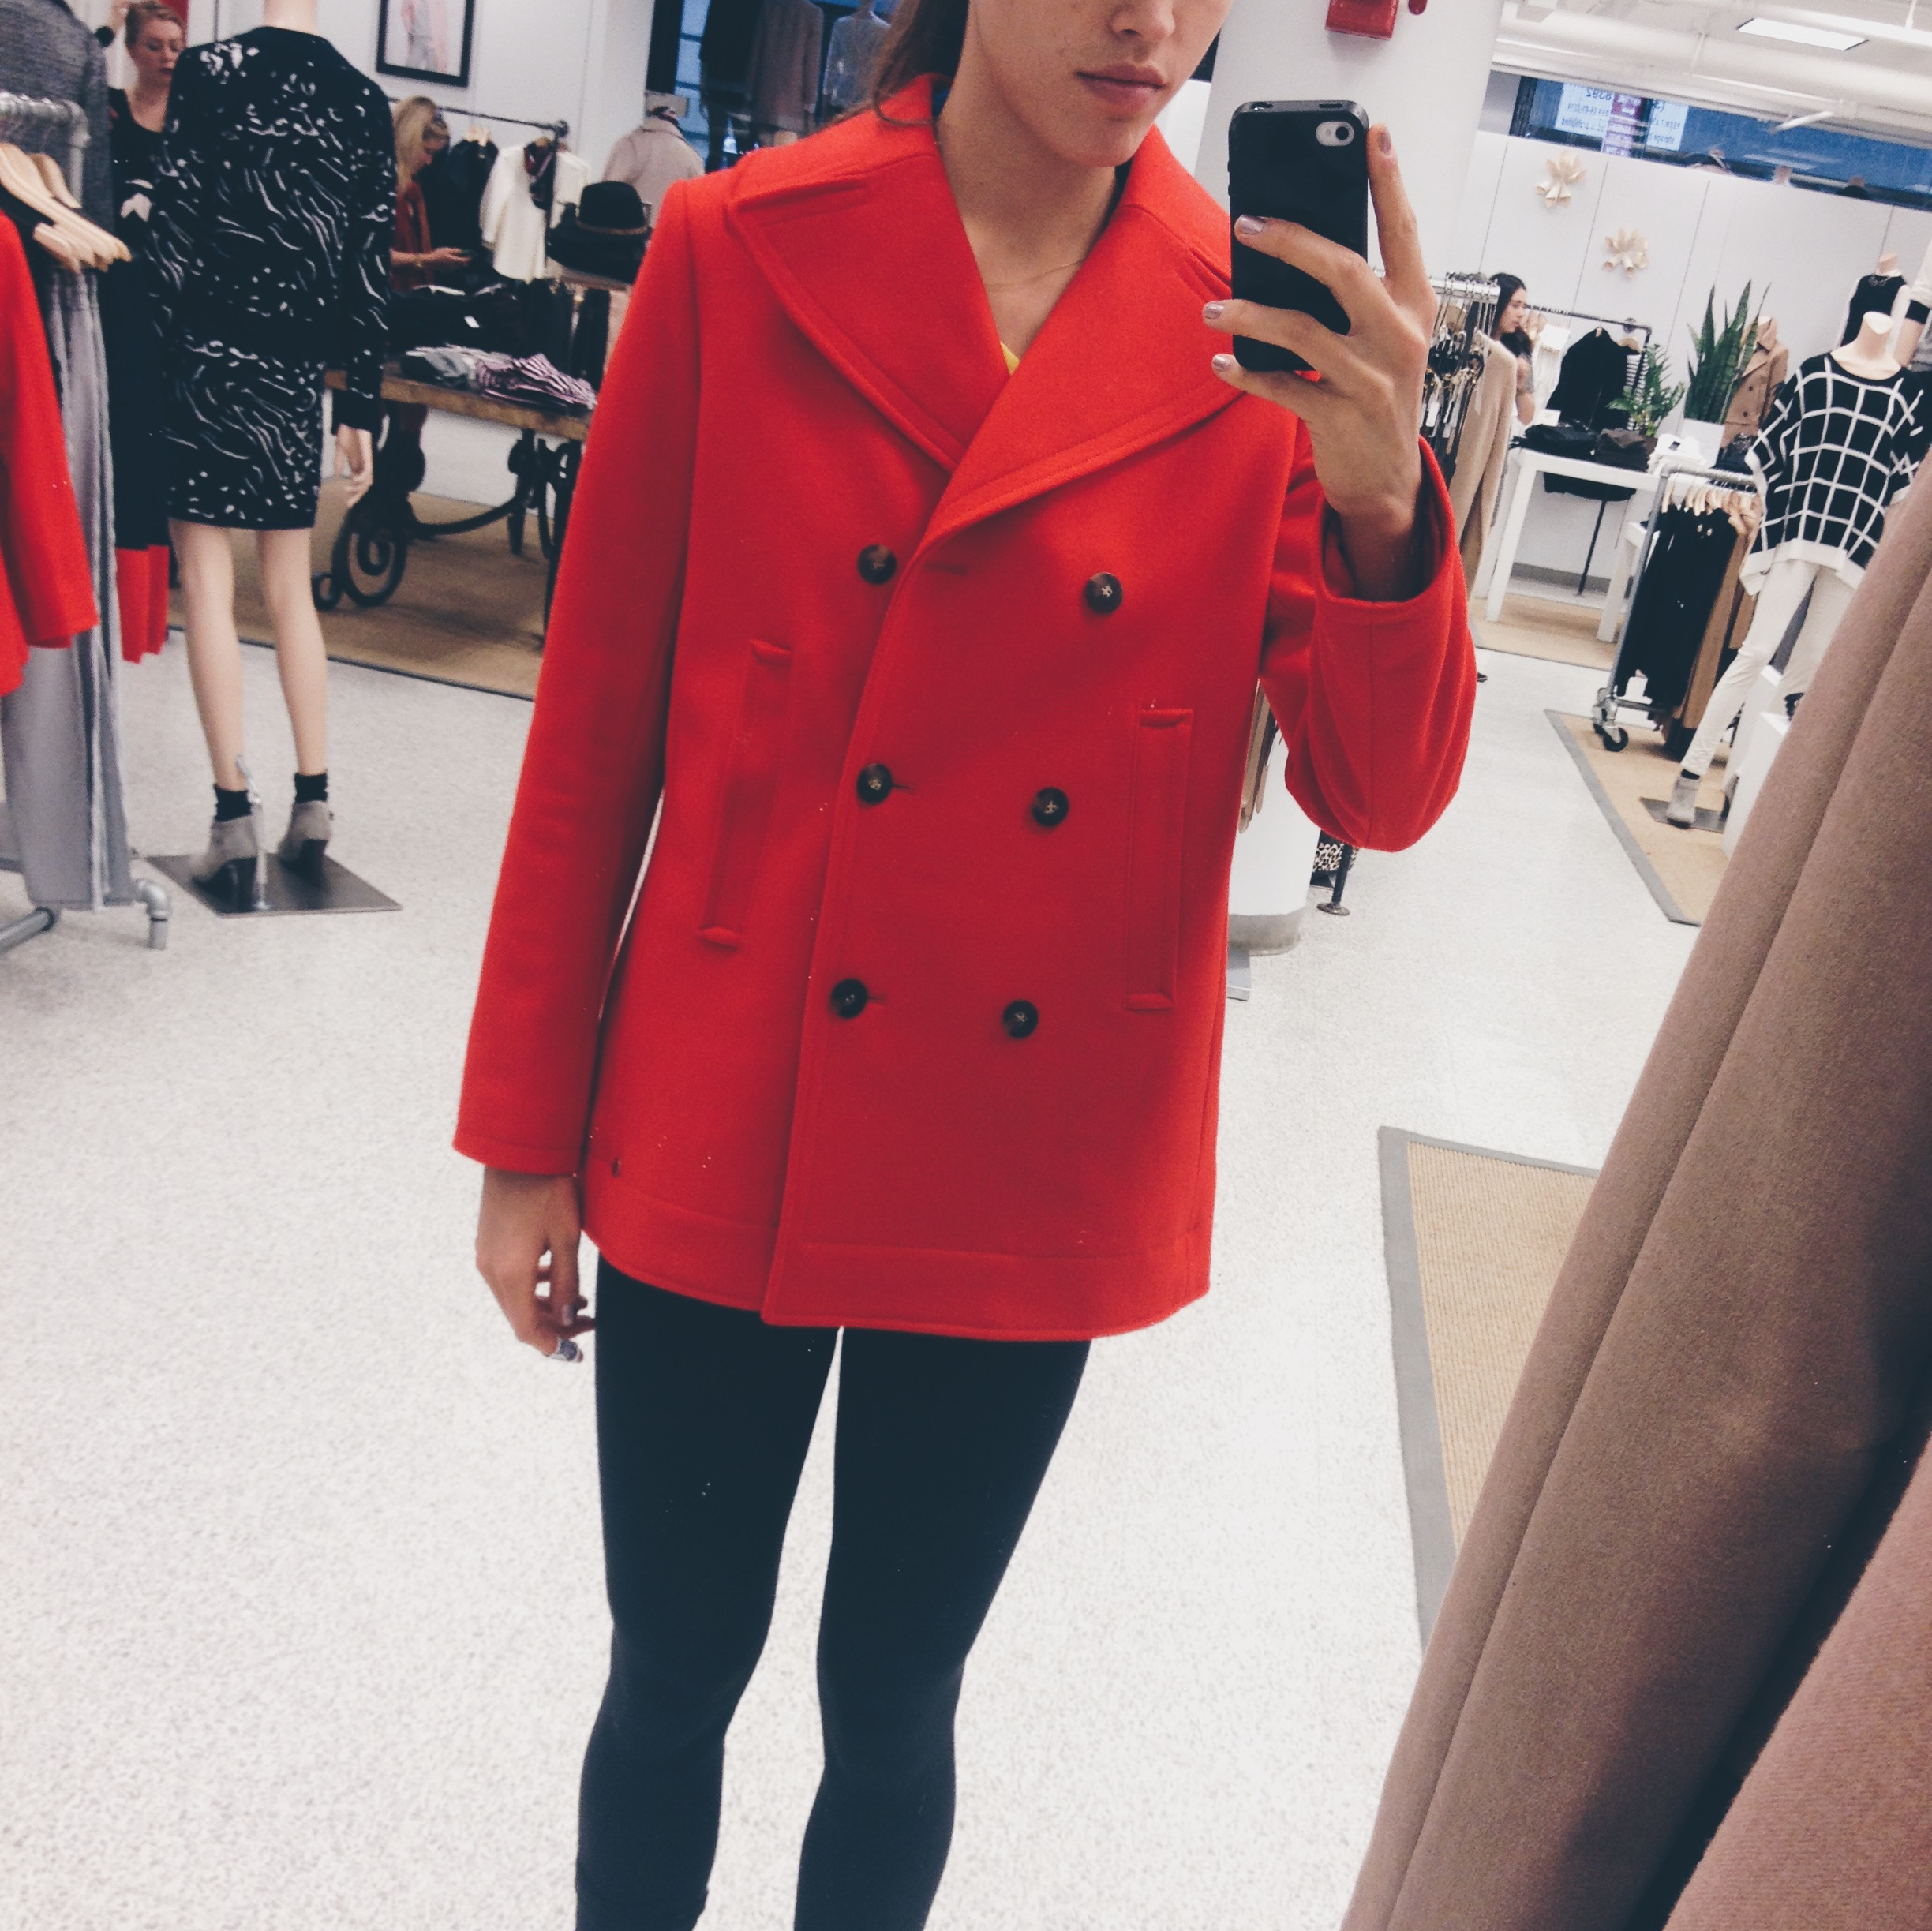 My $550 pea coat that I only wore a handful of times